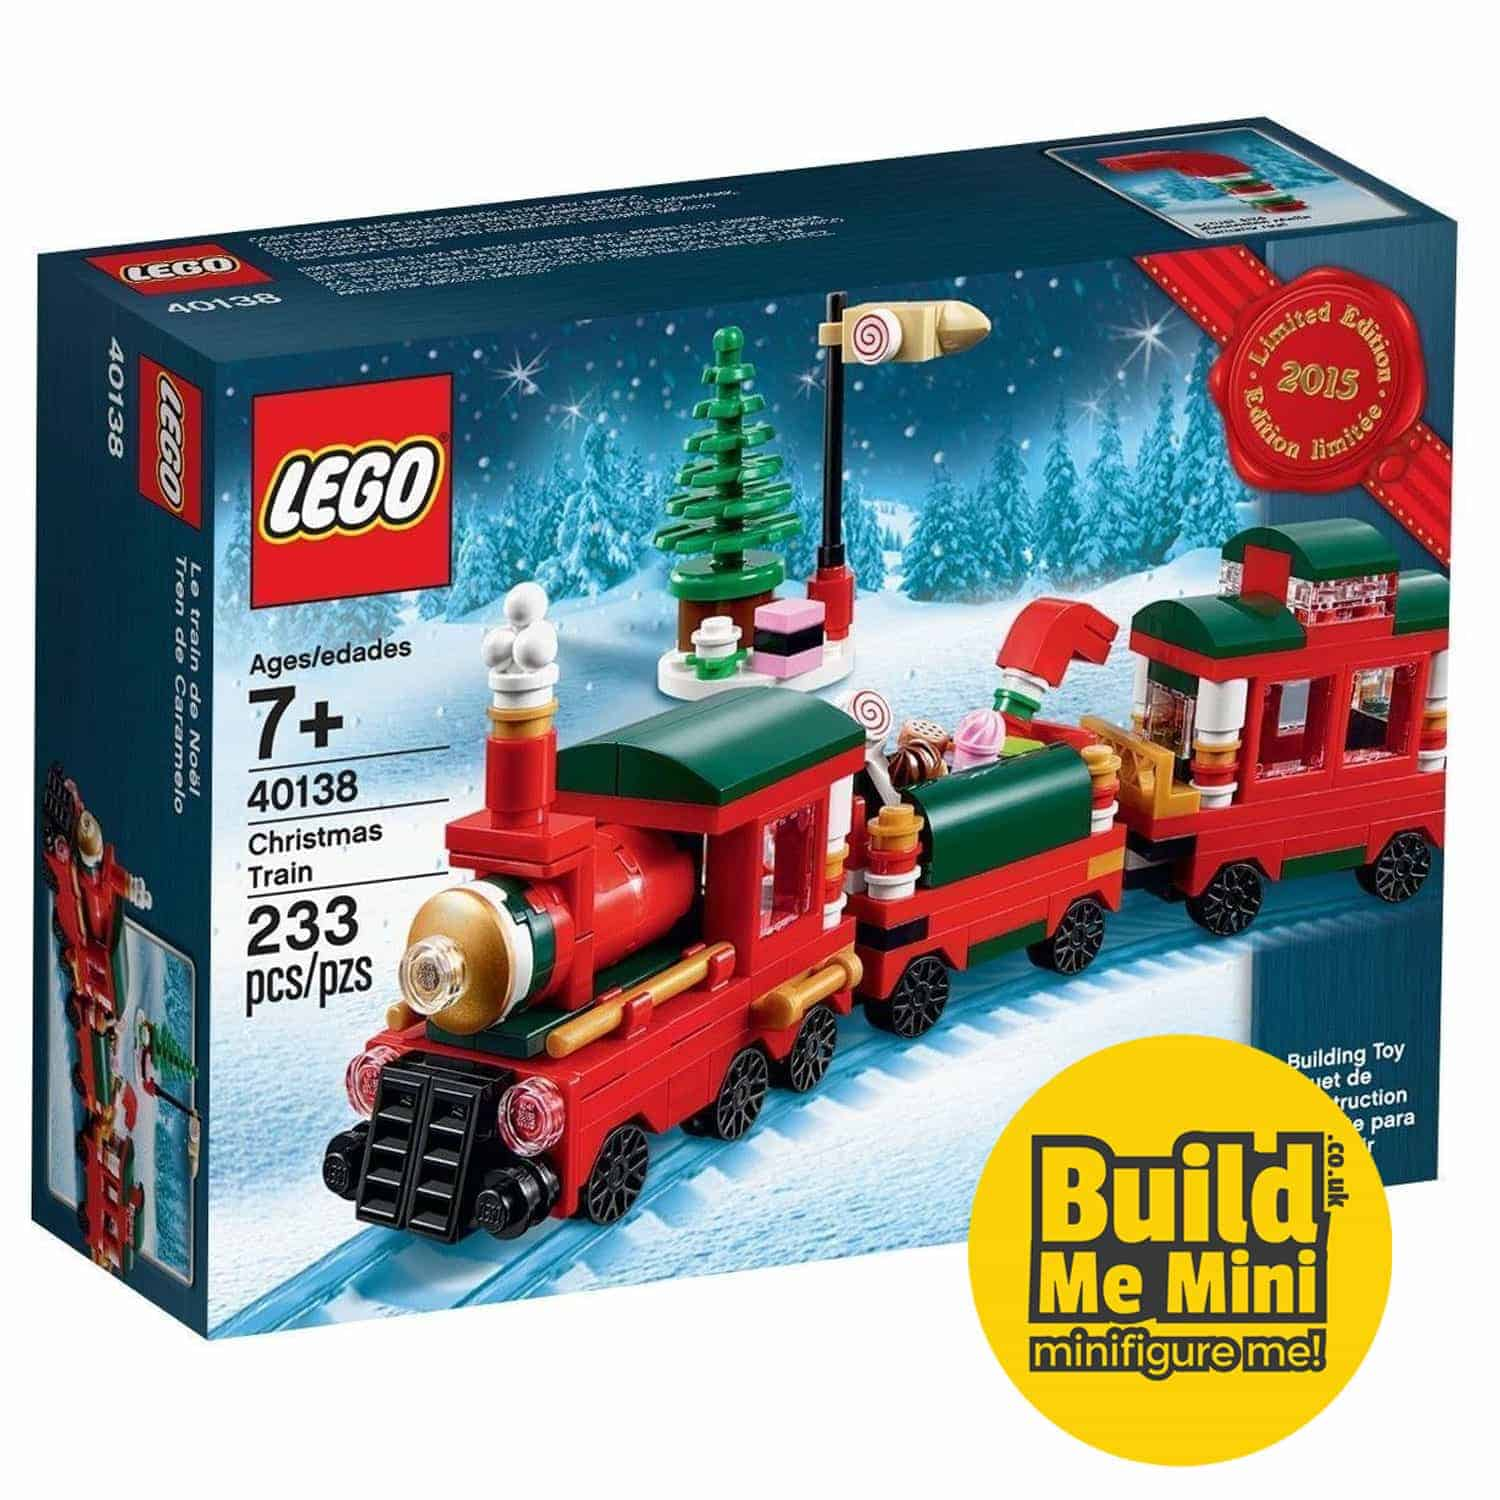 2015 Limited Edition LEGO Christmas Train Set 40138